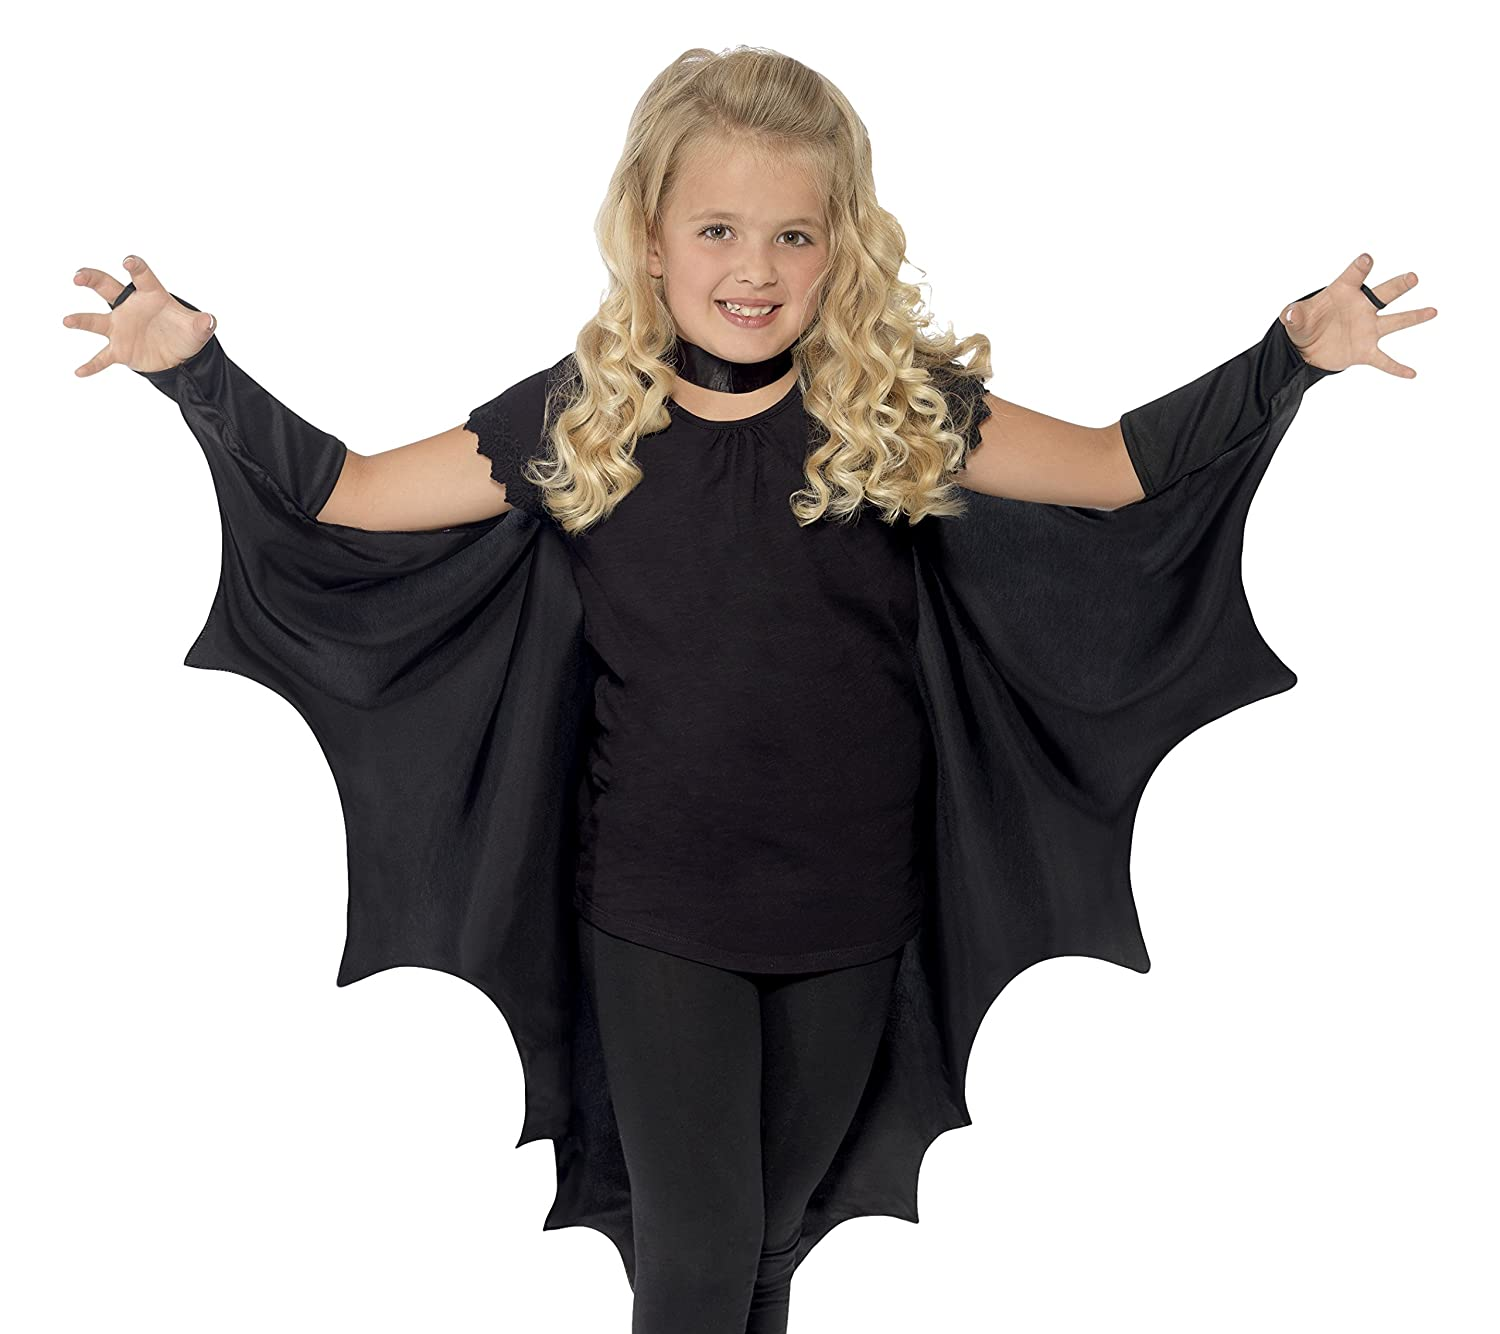 Amazon.com Smiffys Kids Unisex V&ire Bat Costume Wings Black One Size 44414 Smiffys Toys u0026 Games  sc 1 st  Amazon.com & Amazon.com: Smiffys Kids Unisex Vampire Bat Costume Wings Black ...